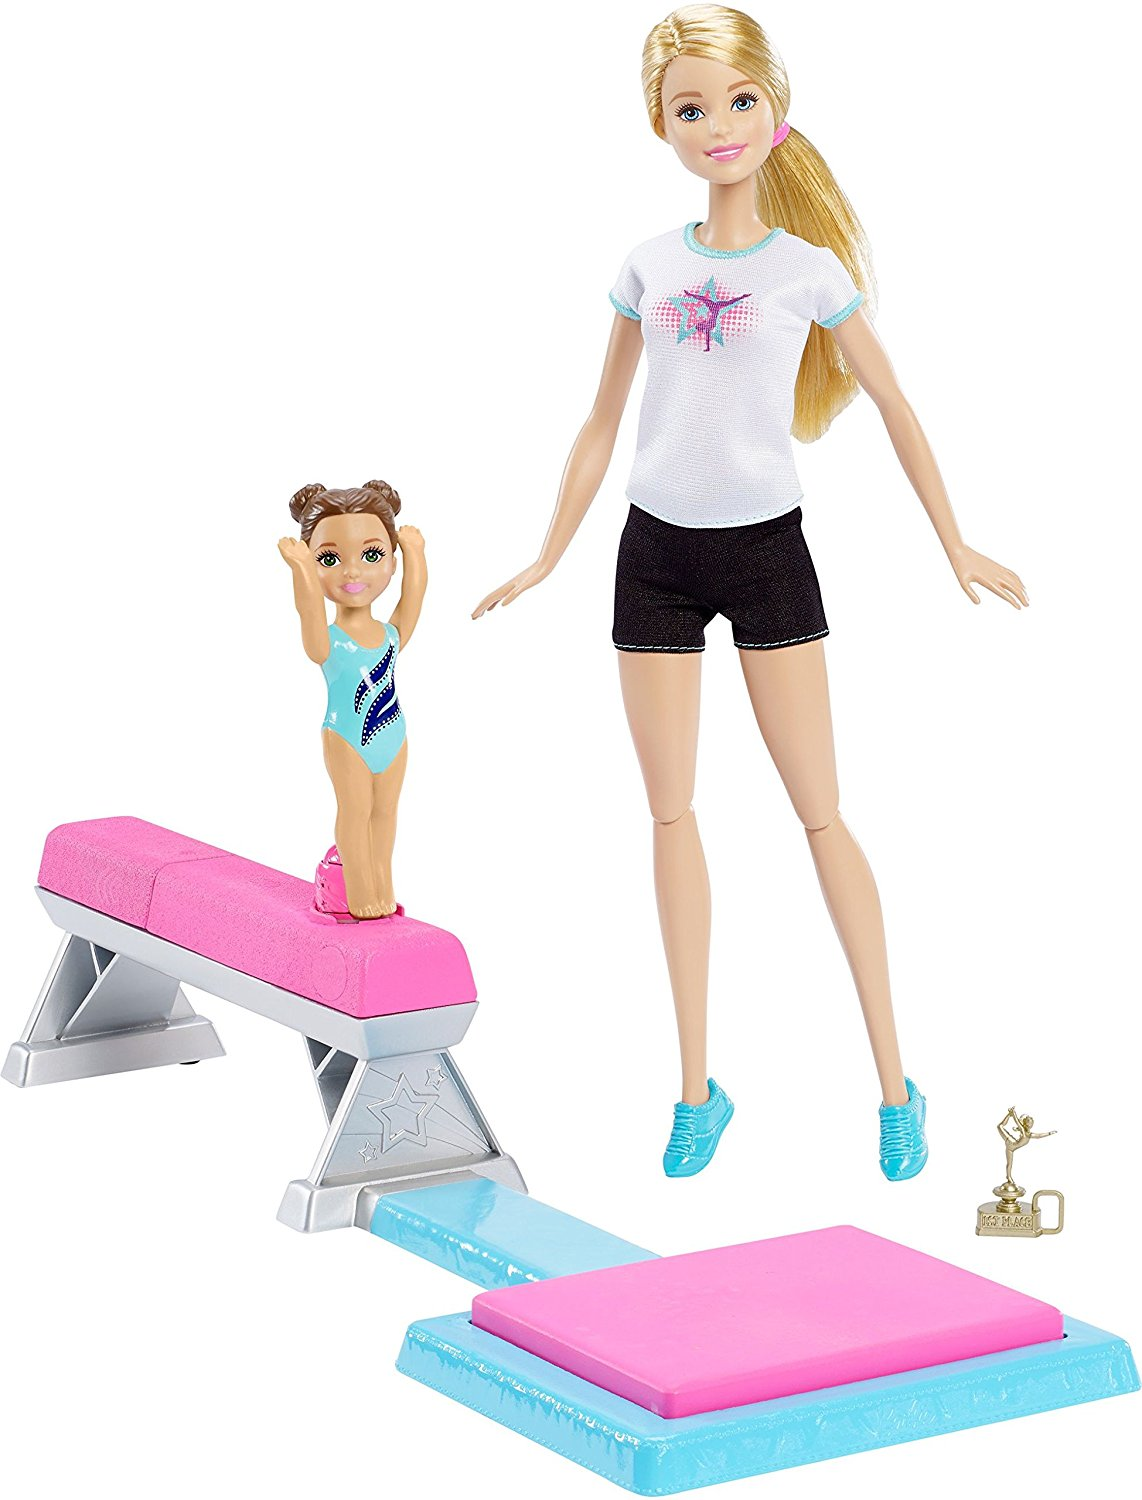 Mattel Barbie Flippin Fun Gymnast  DMC37